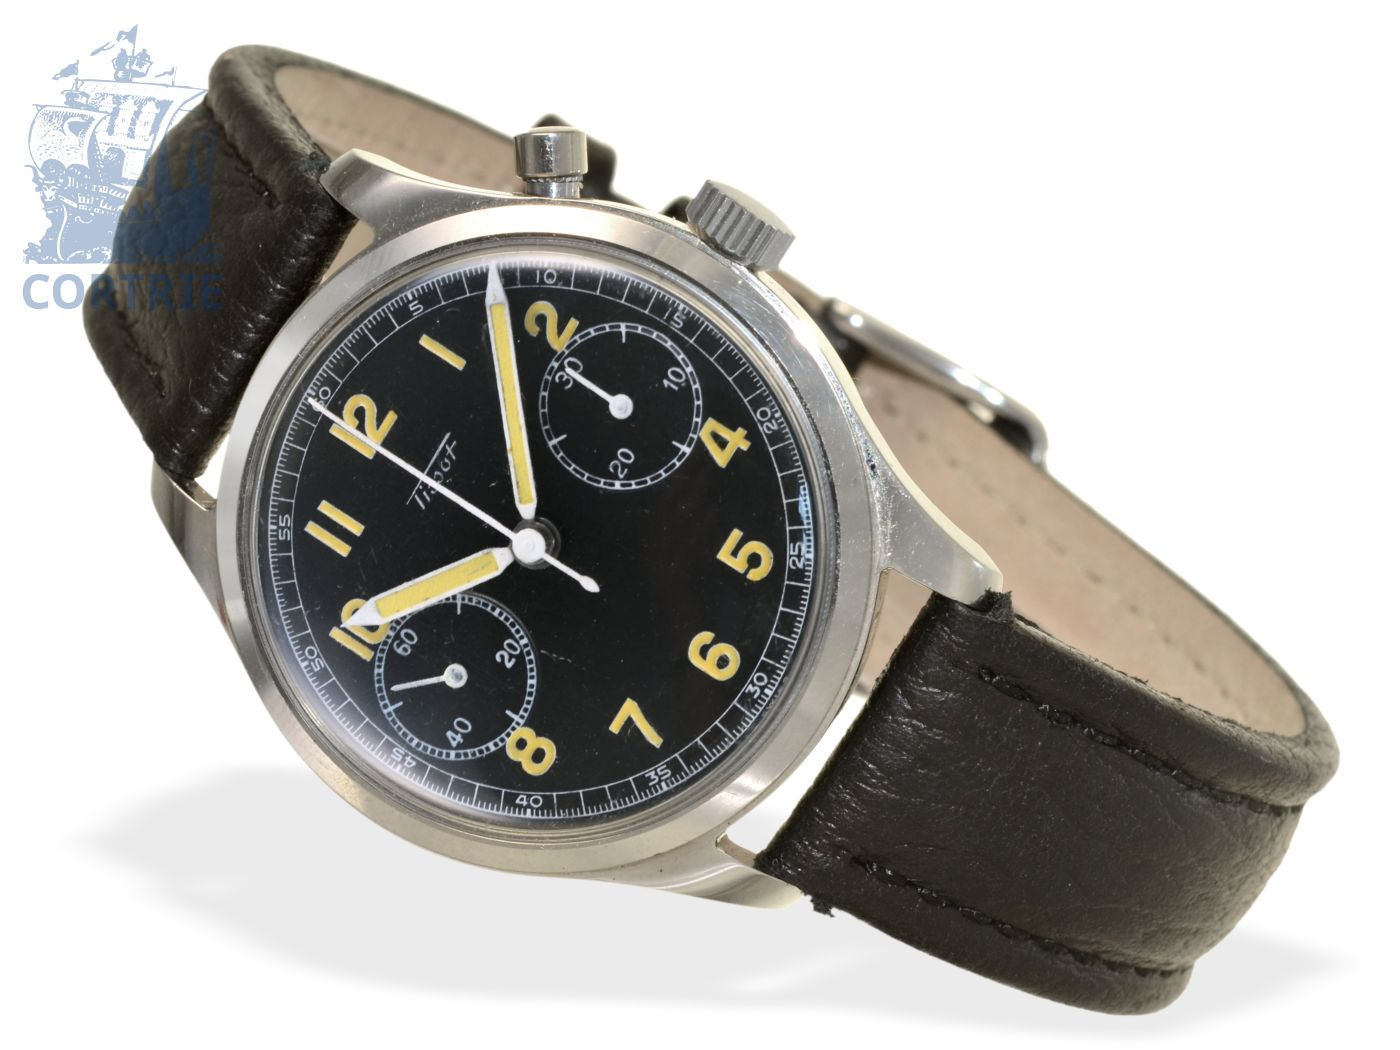 Wristwatch: rare Tissot chronograph with black dial, ca. 1950-